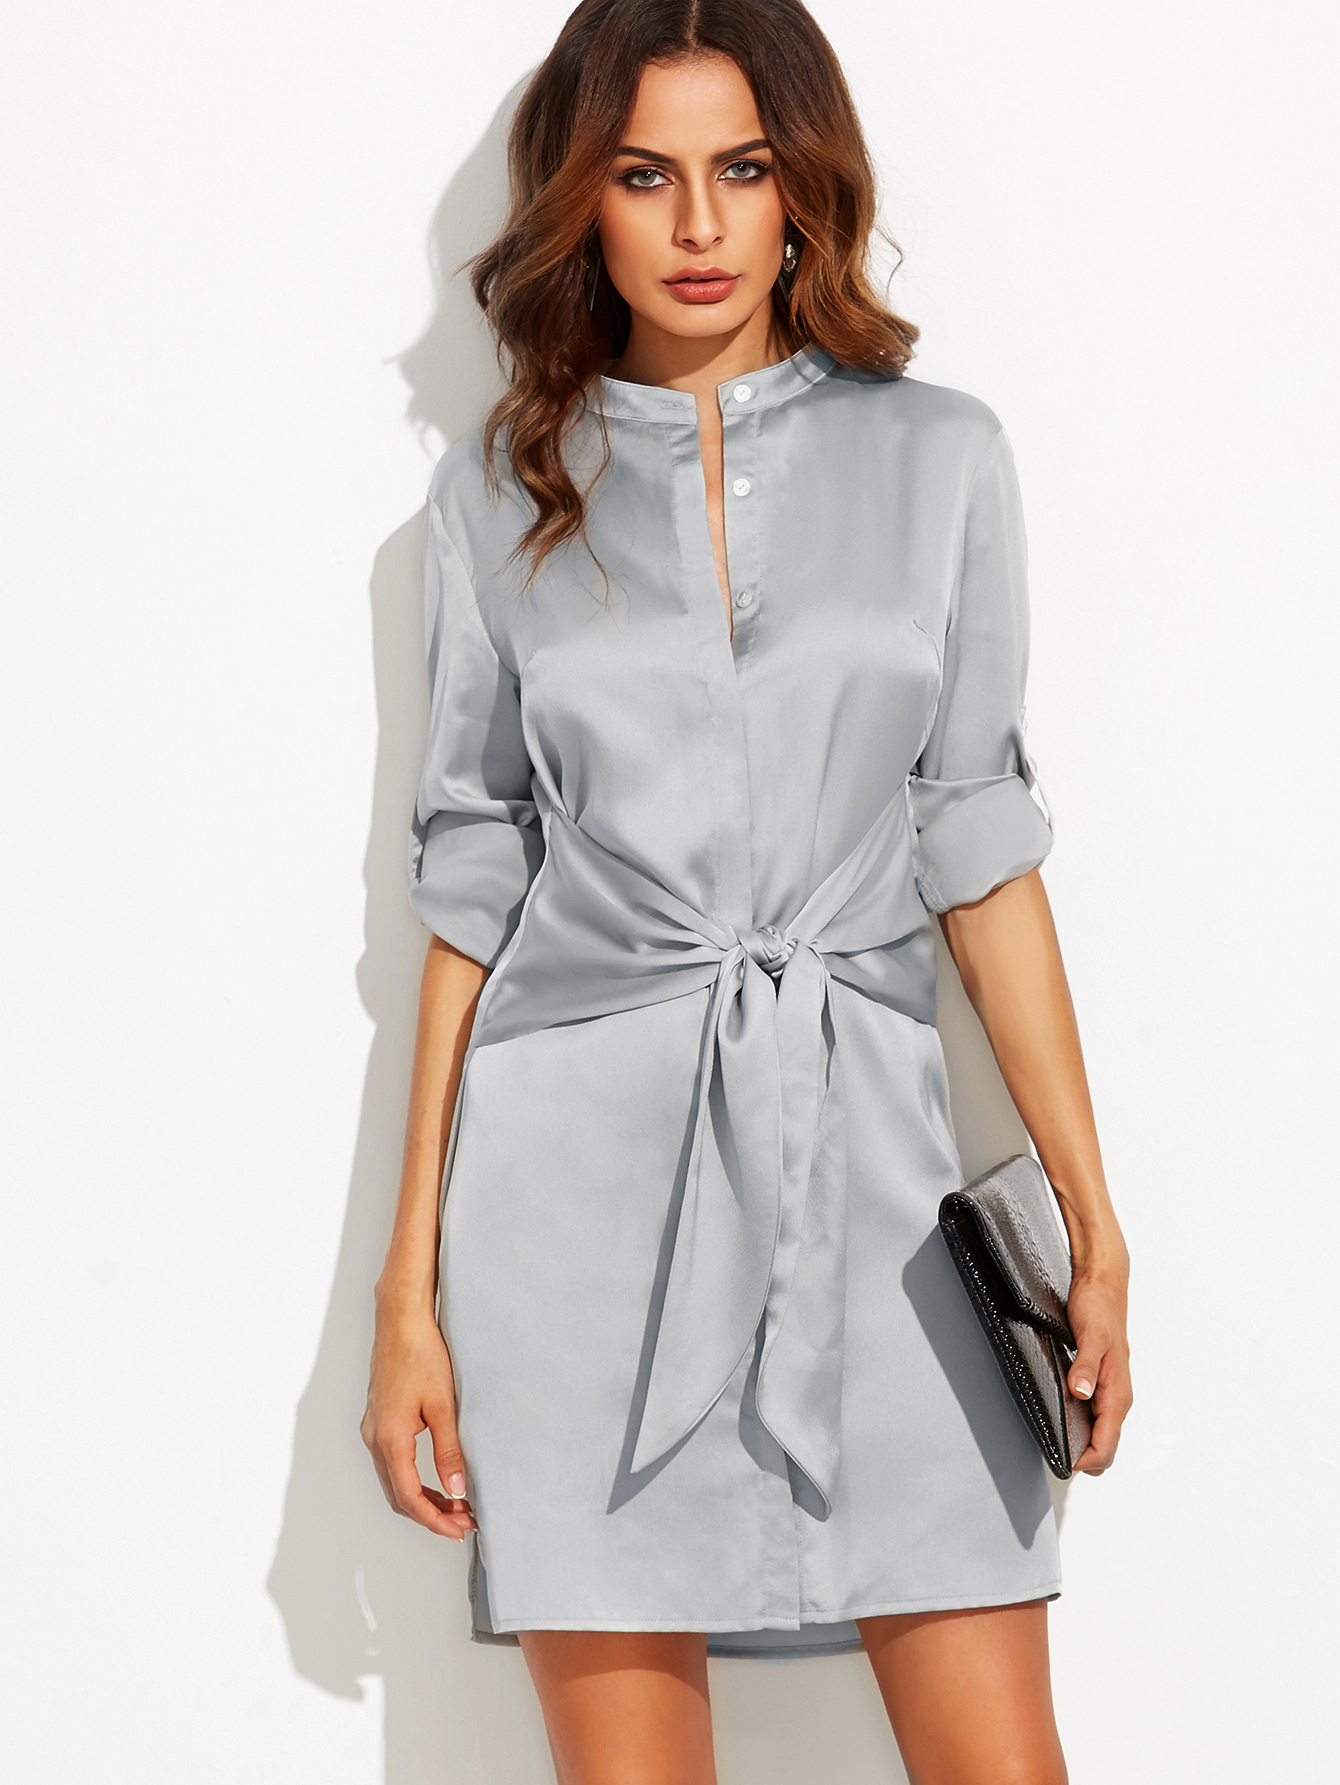 Silver roll up sleeve tie waist dress shops roll up sleeves and